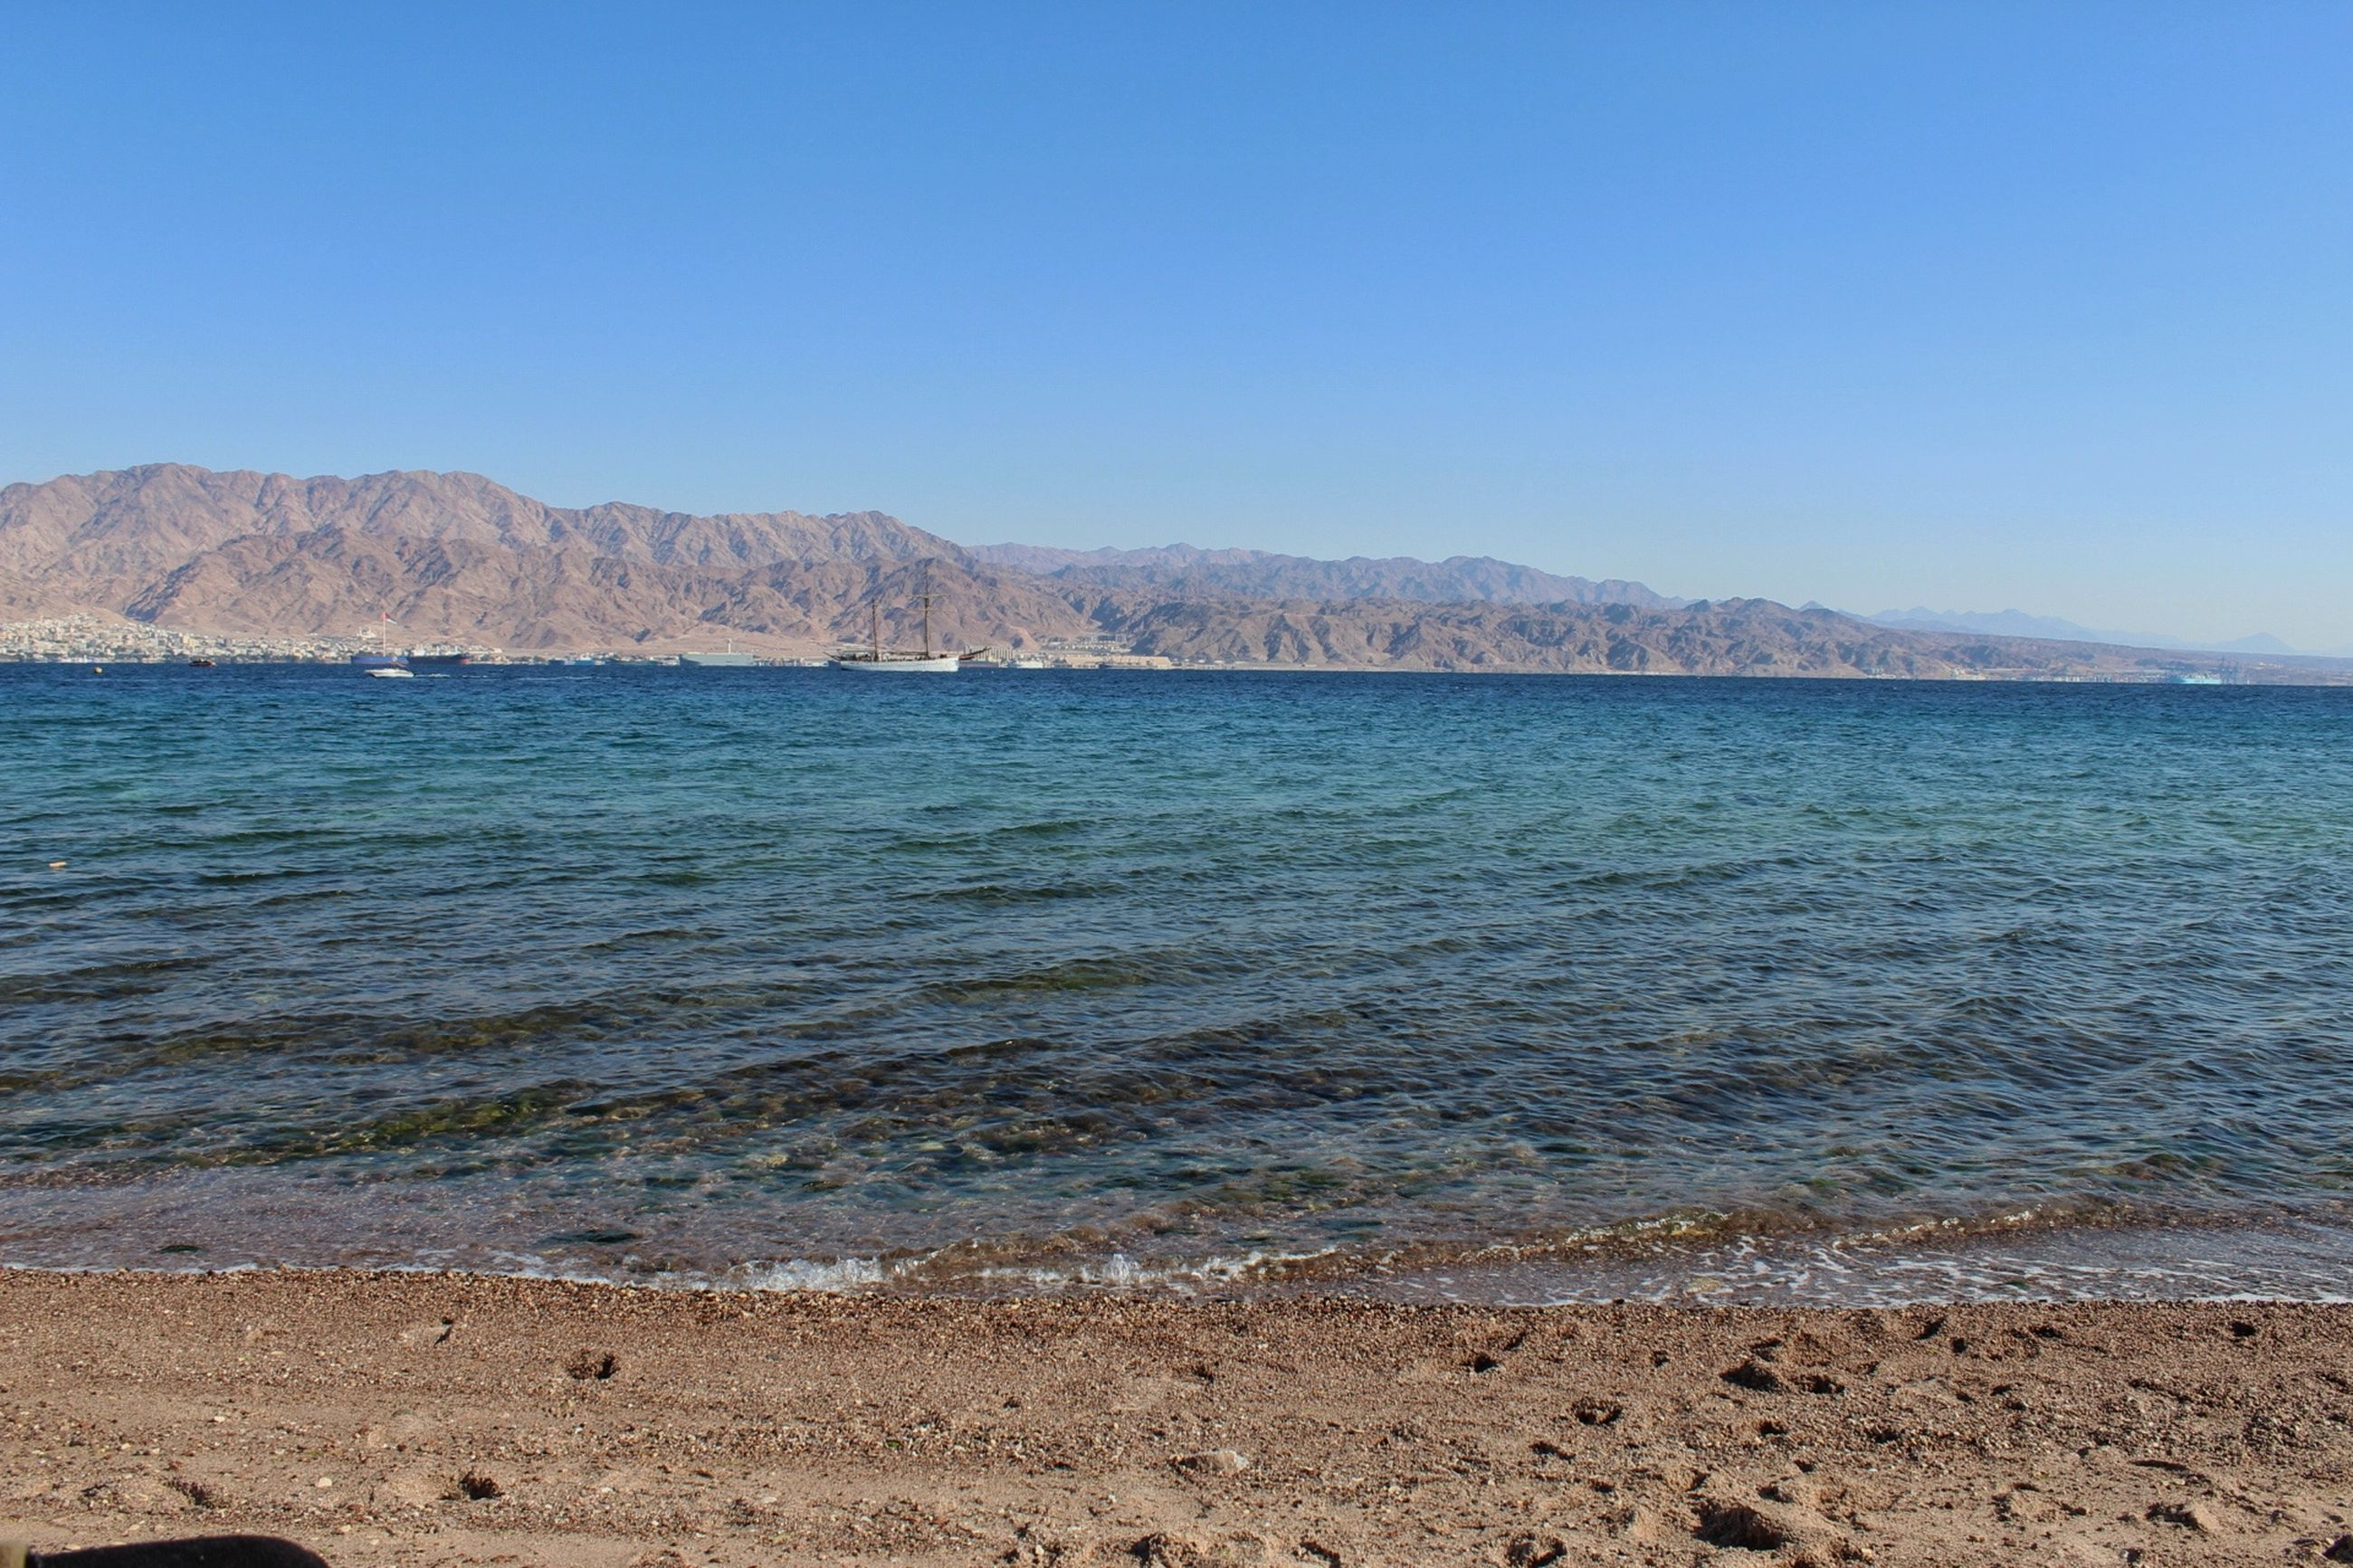 nature, scenics, outdoors, beauty in nature, tranquil scene, day, no people, tranquility, rock - object, clear sky, water